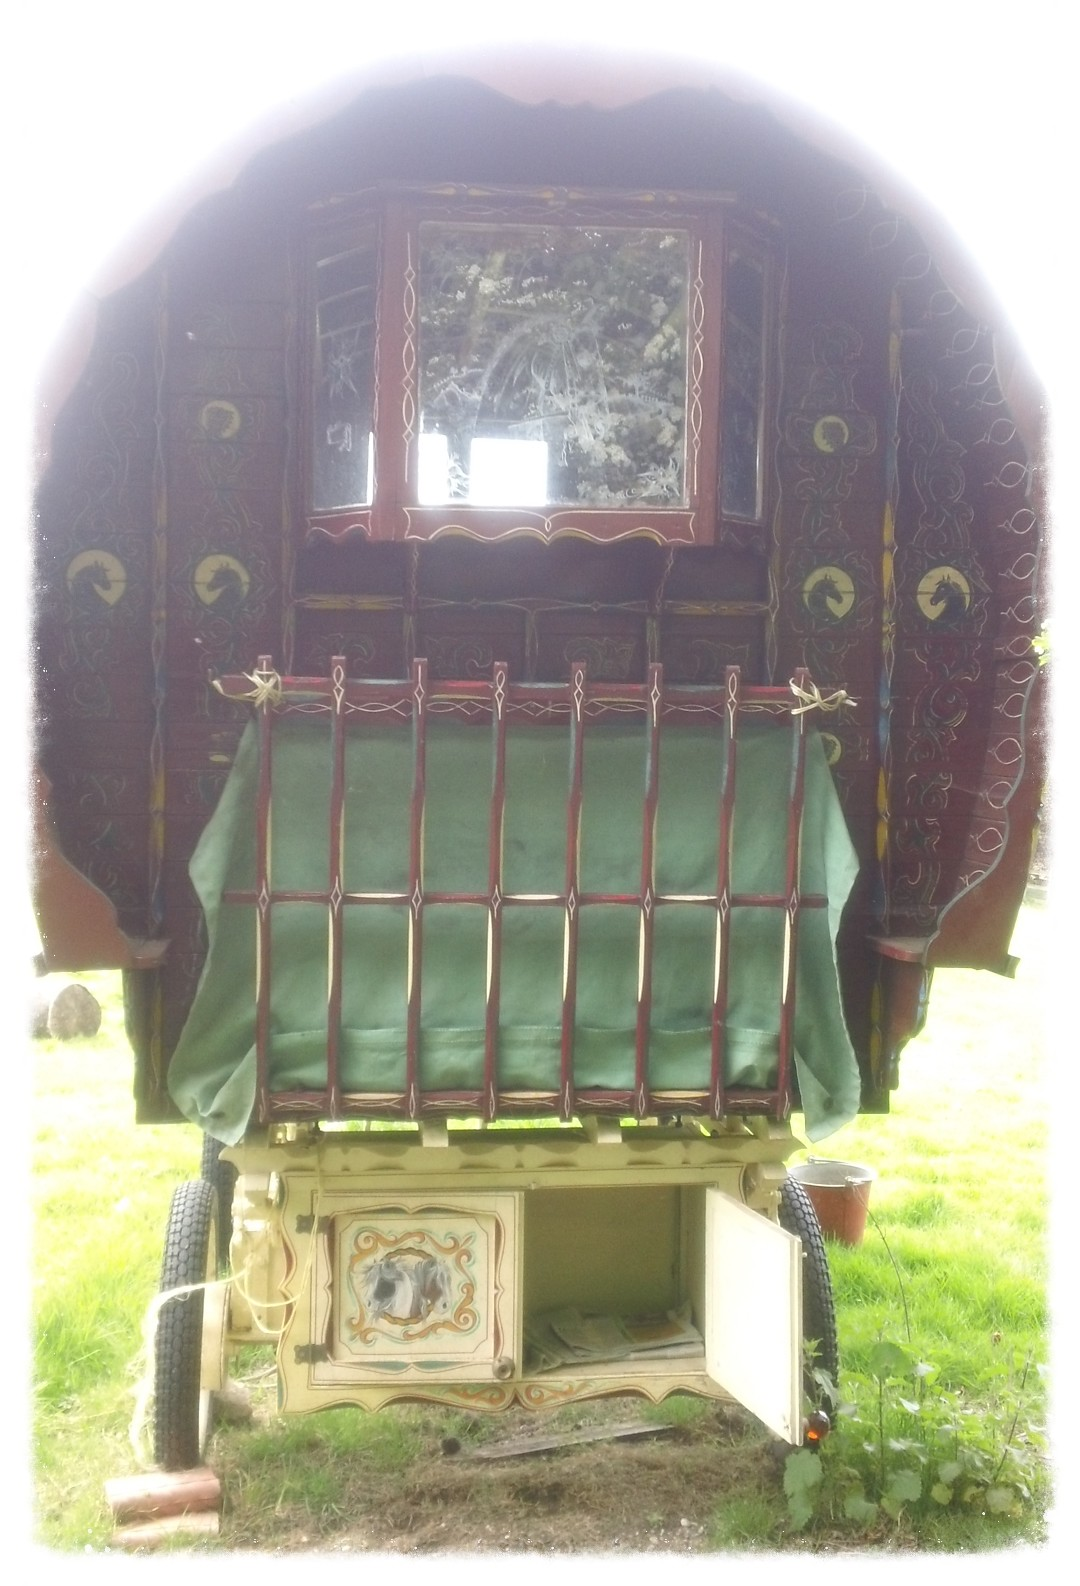 Gypsy caravan head-on view